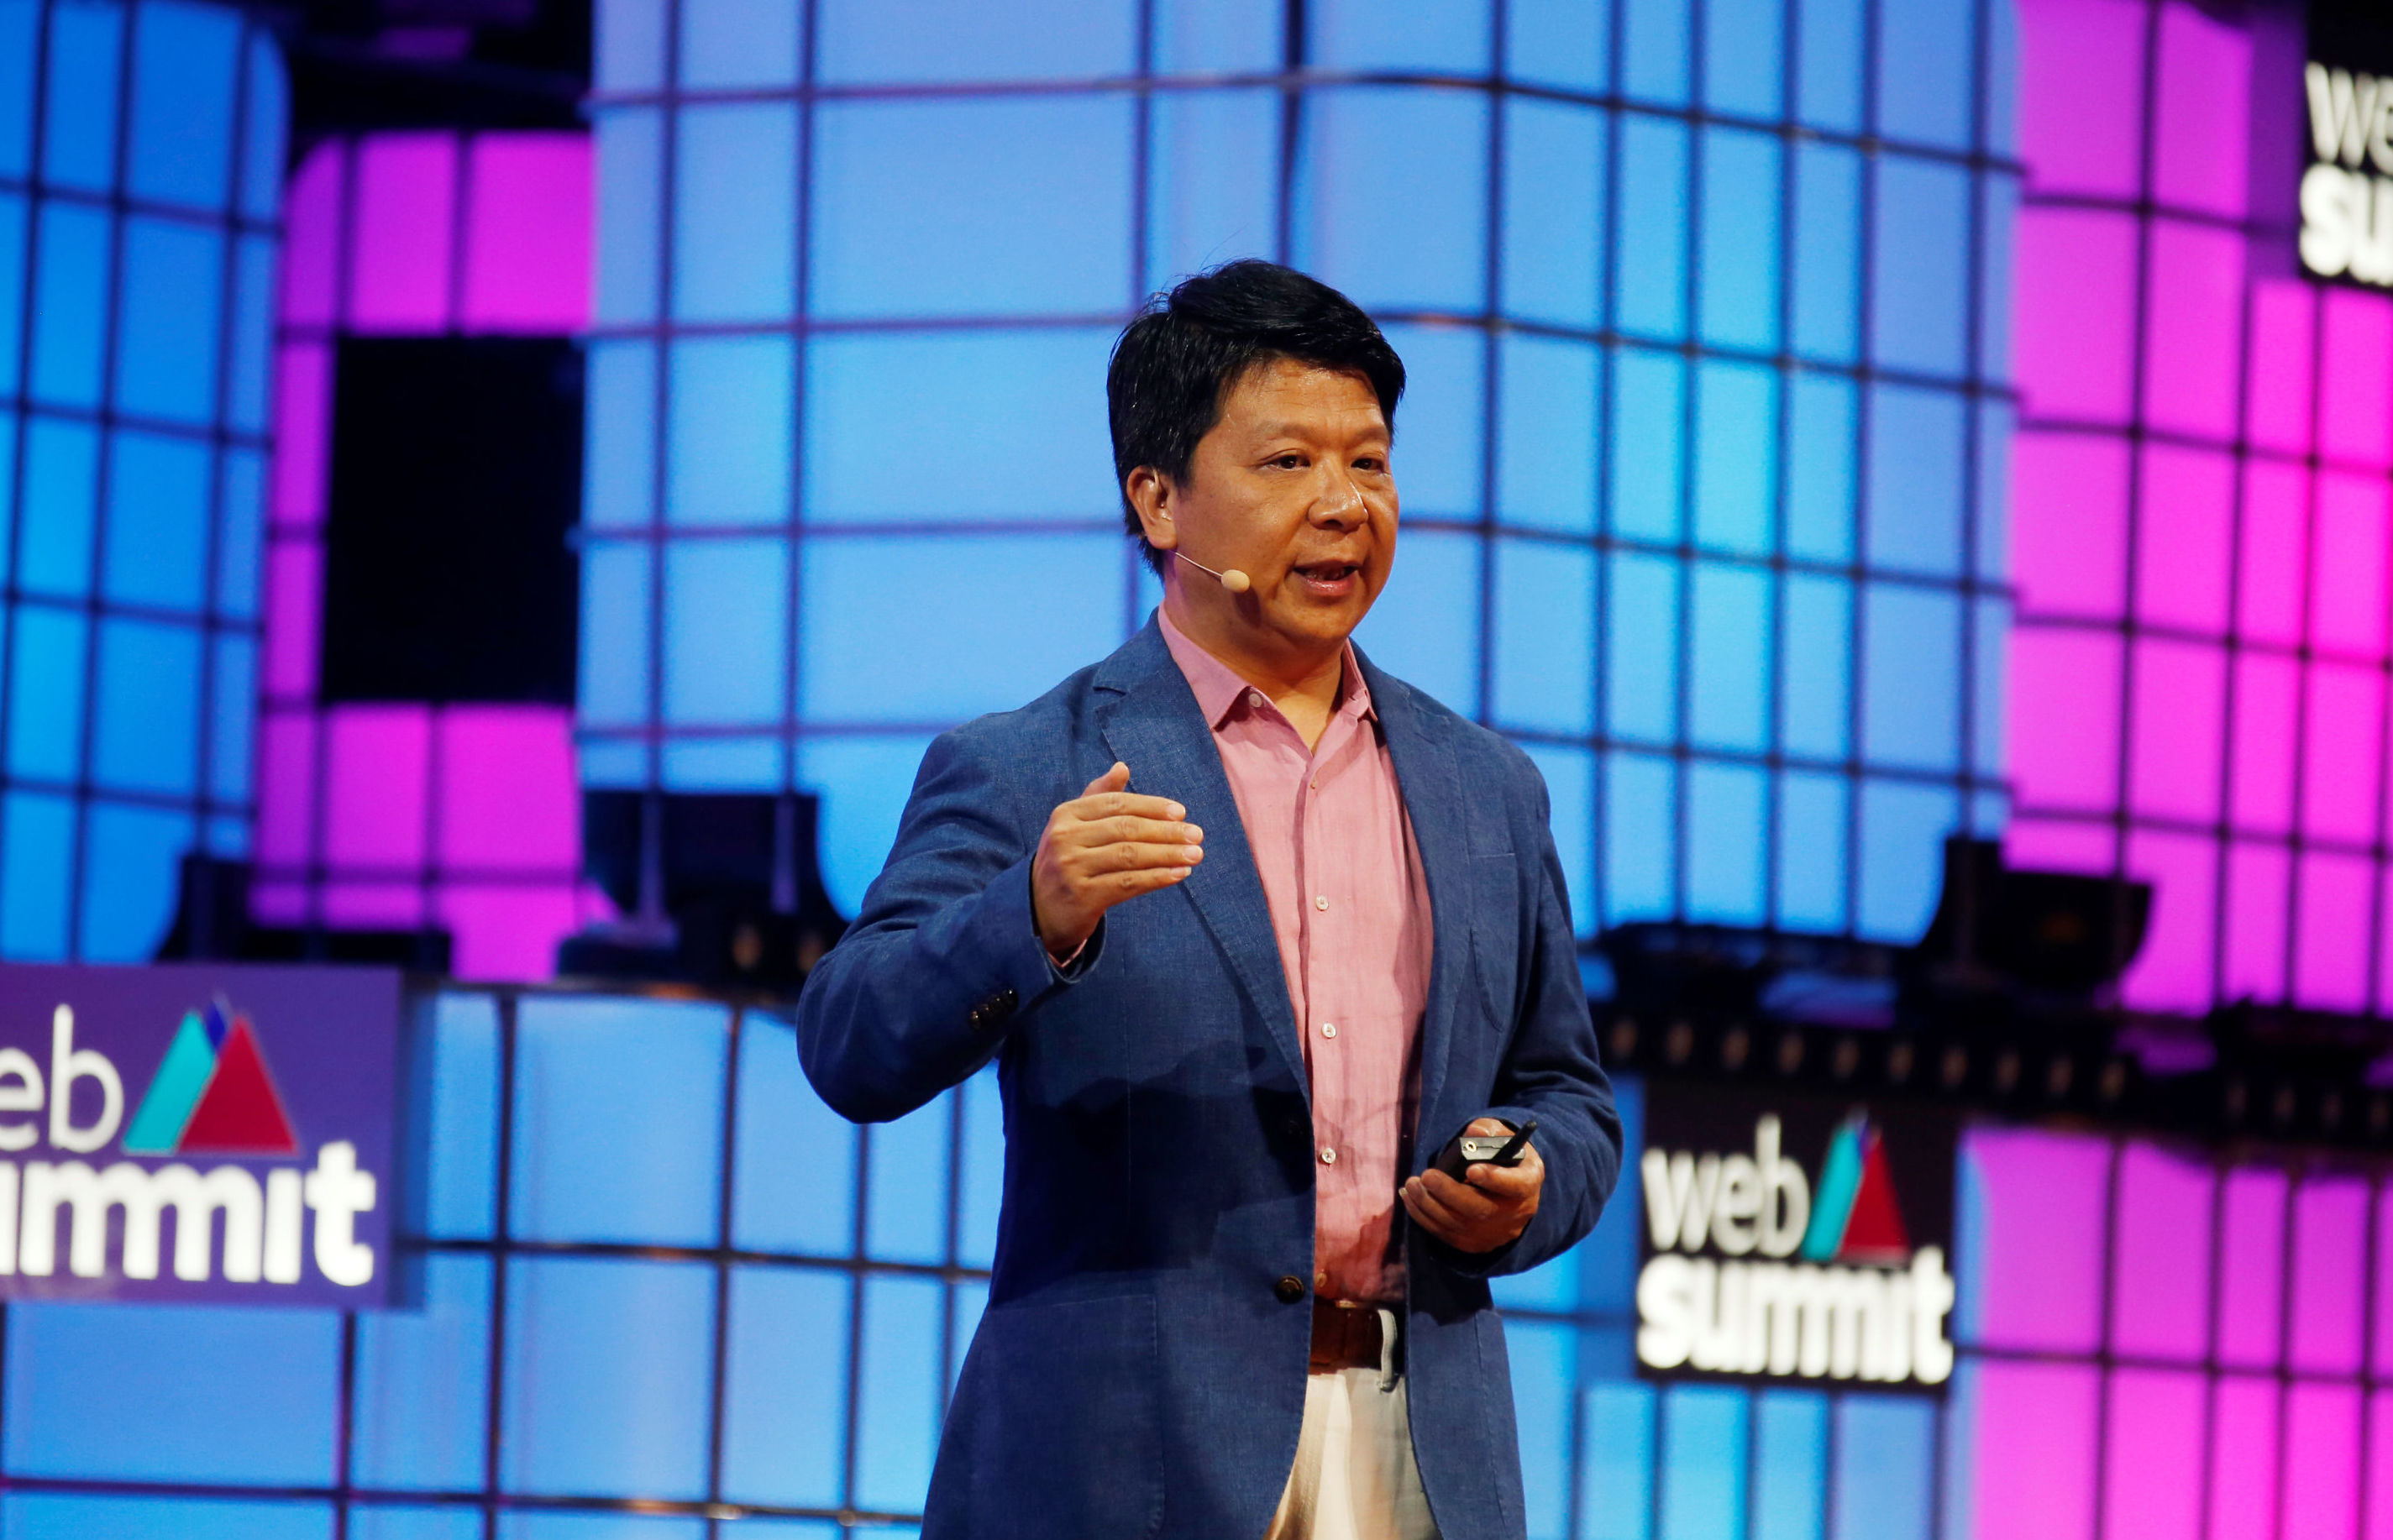 Huawei's rotating chairman Guo Ping speaks during the Web Summit in Lisbon, Portugal, November 4, 2019